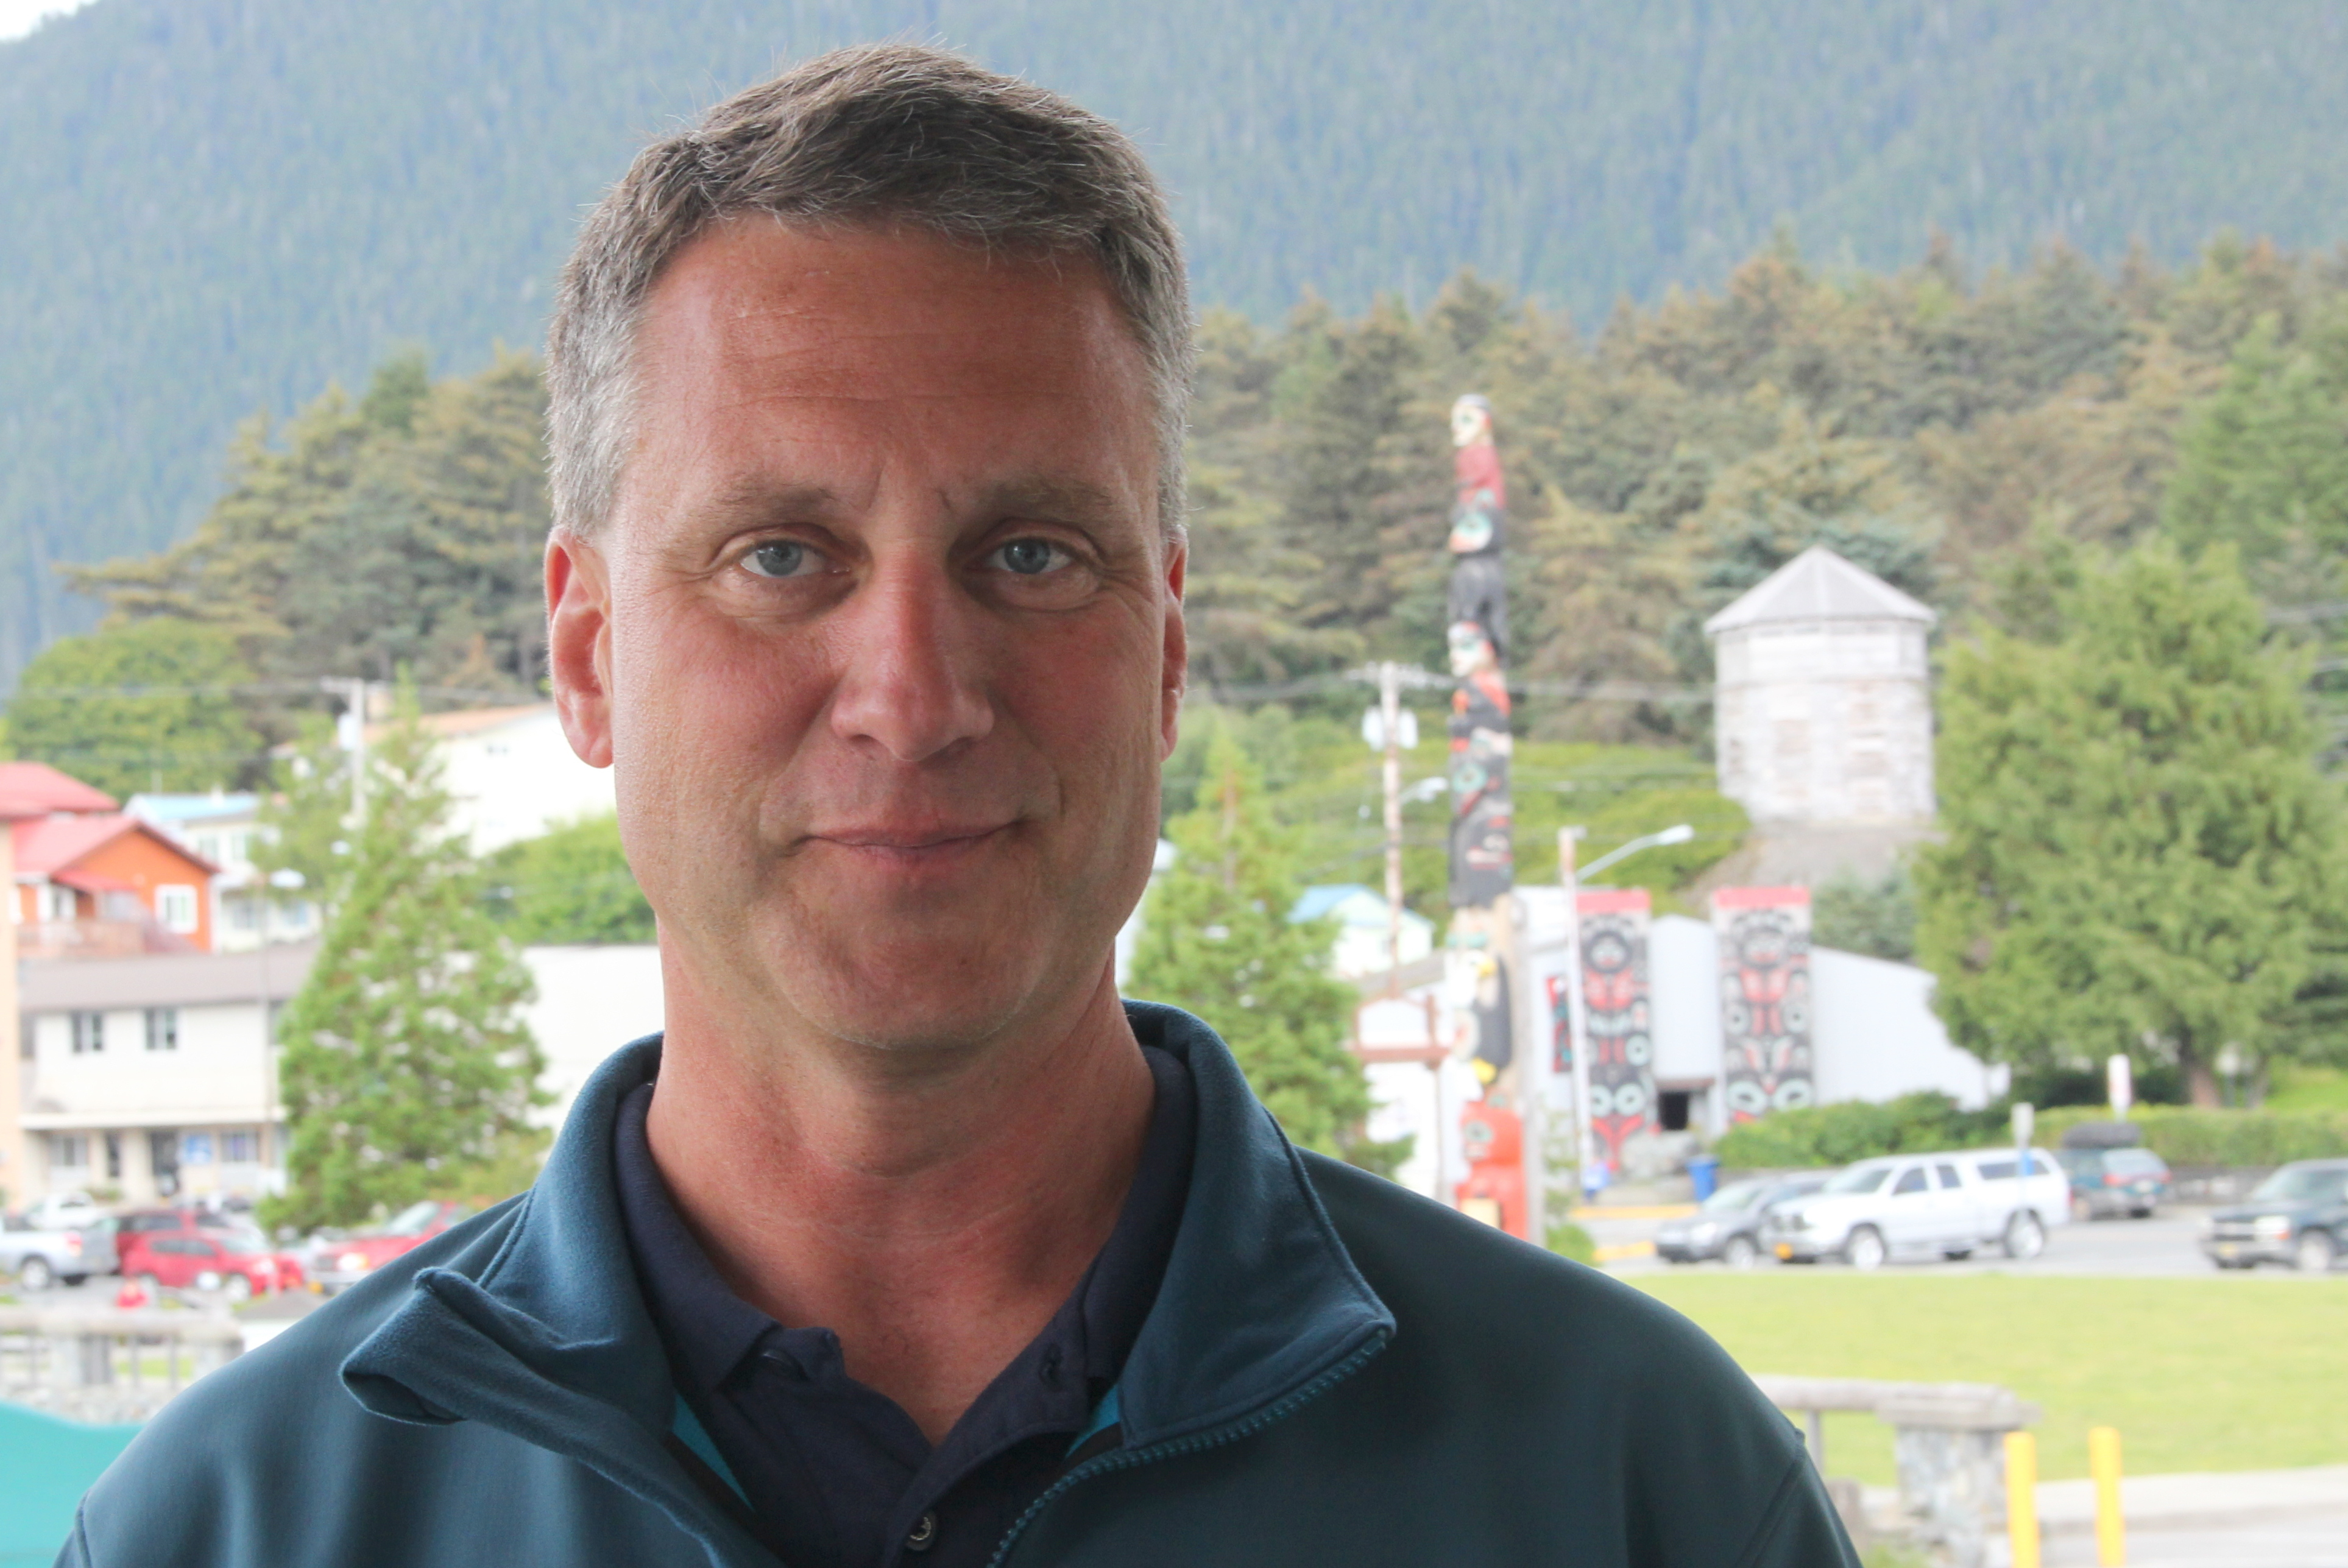 With final mission, Kluting says goodbye to SAR